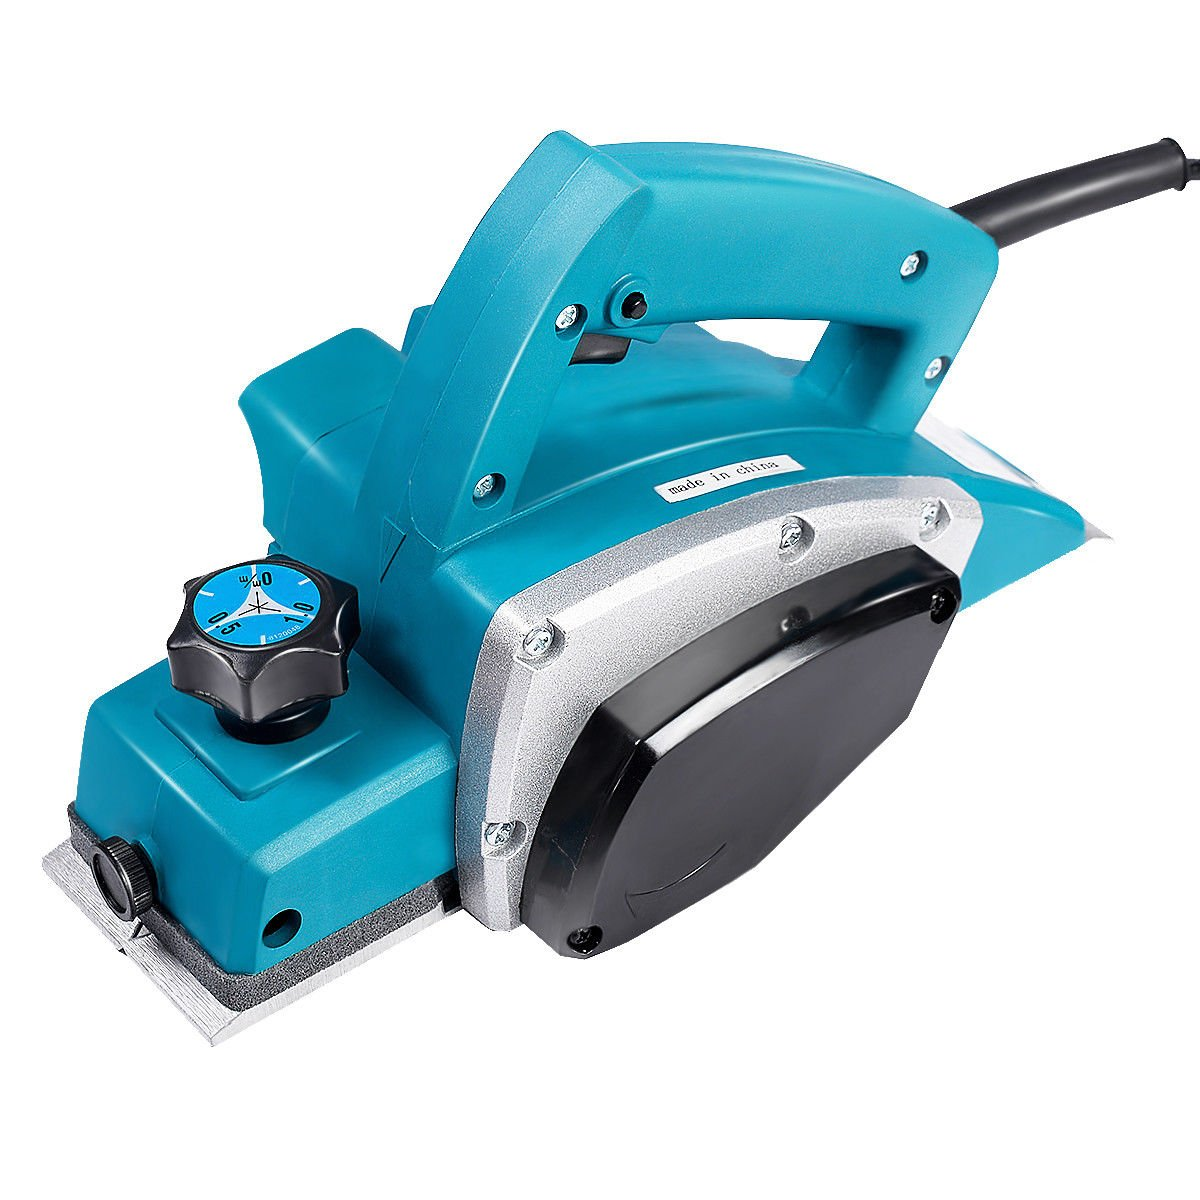 Wood Planer,110V Portable Electric Wood Planer Hand Held Woodworking Power Tool for Home Furniture by Estink